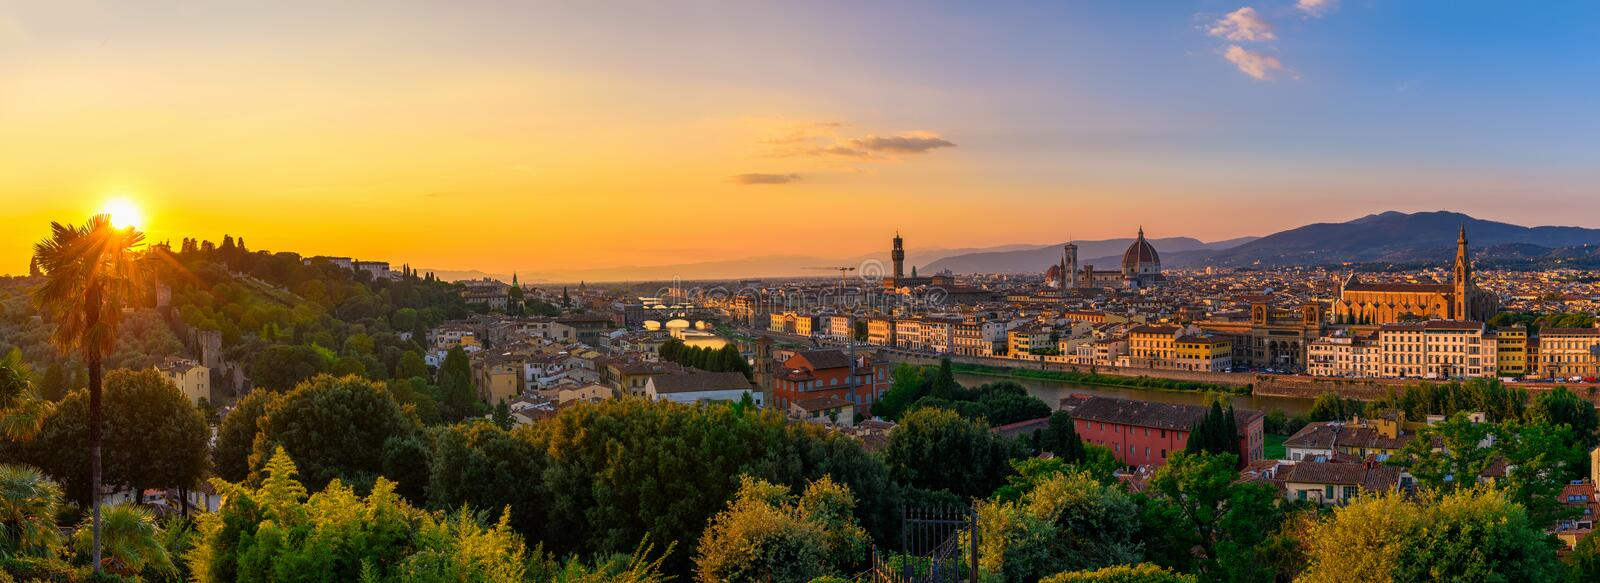 Florence, Ponte Vecchio, Palazzo Vecchio and Florence Duomo, Italy. Panoramic sunset view of Florence, Ponte Vecchio, Palazzo Vecchio and Florence Duomo, Italy stock image